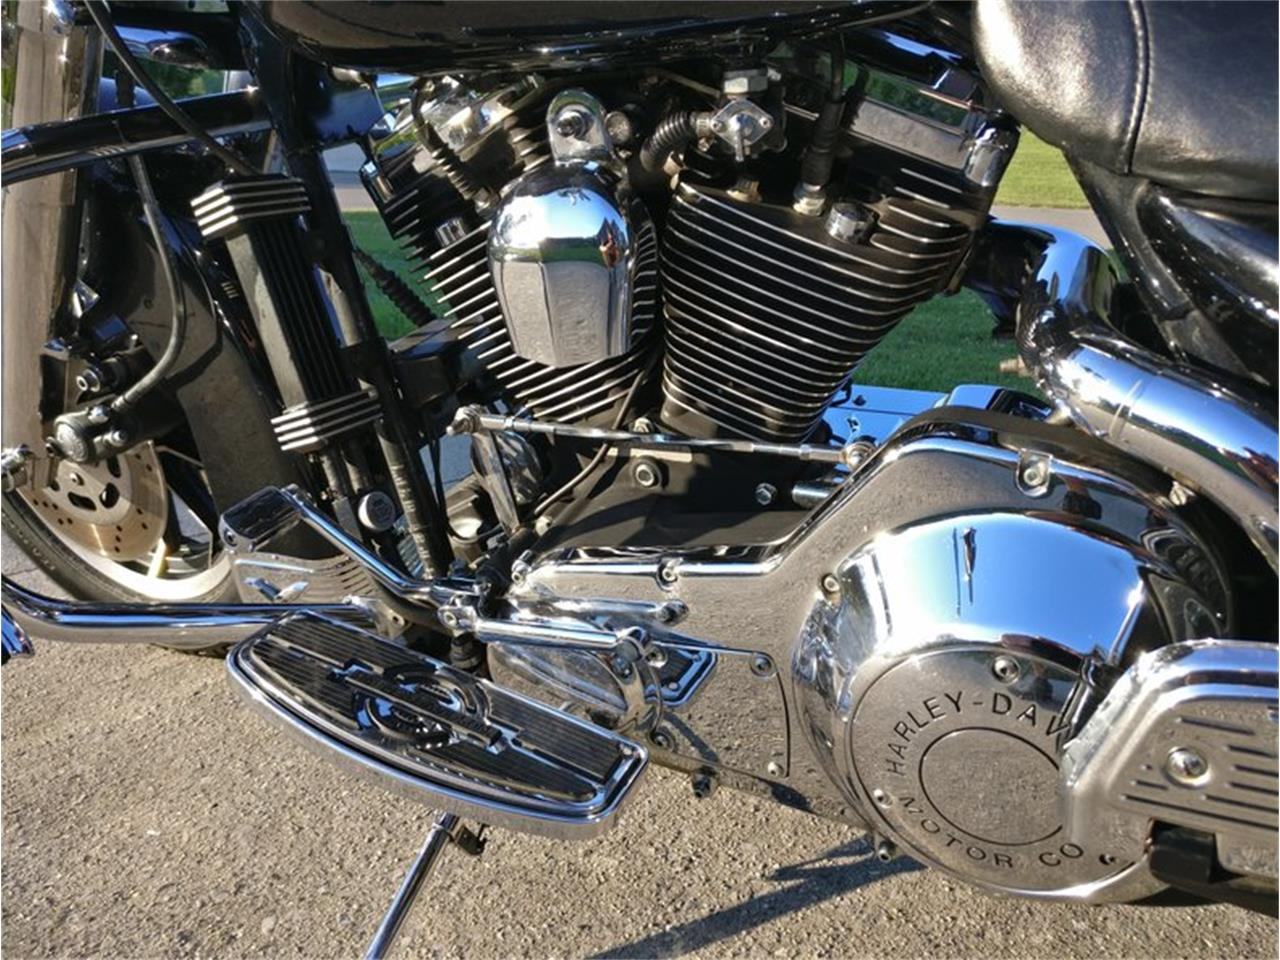 1998 Harley-Davidson Road King for sale in Cookeville, TN – photo 18